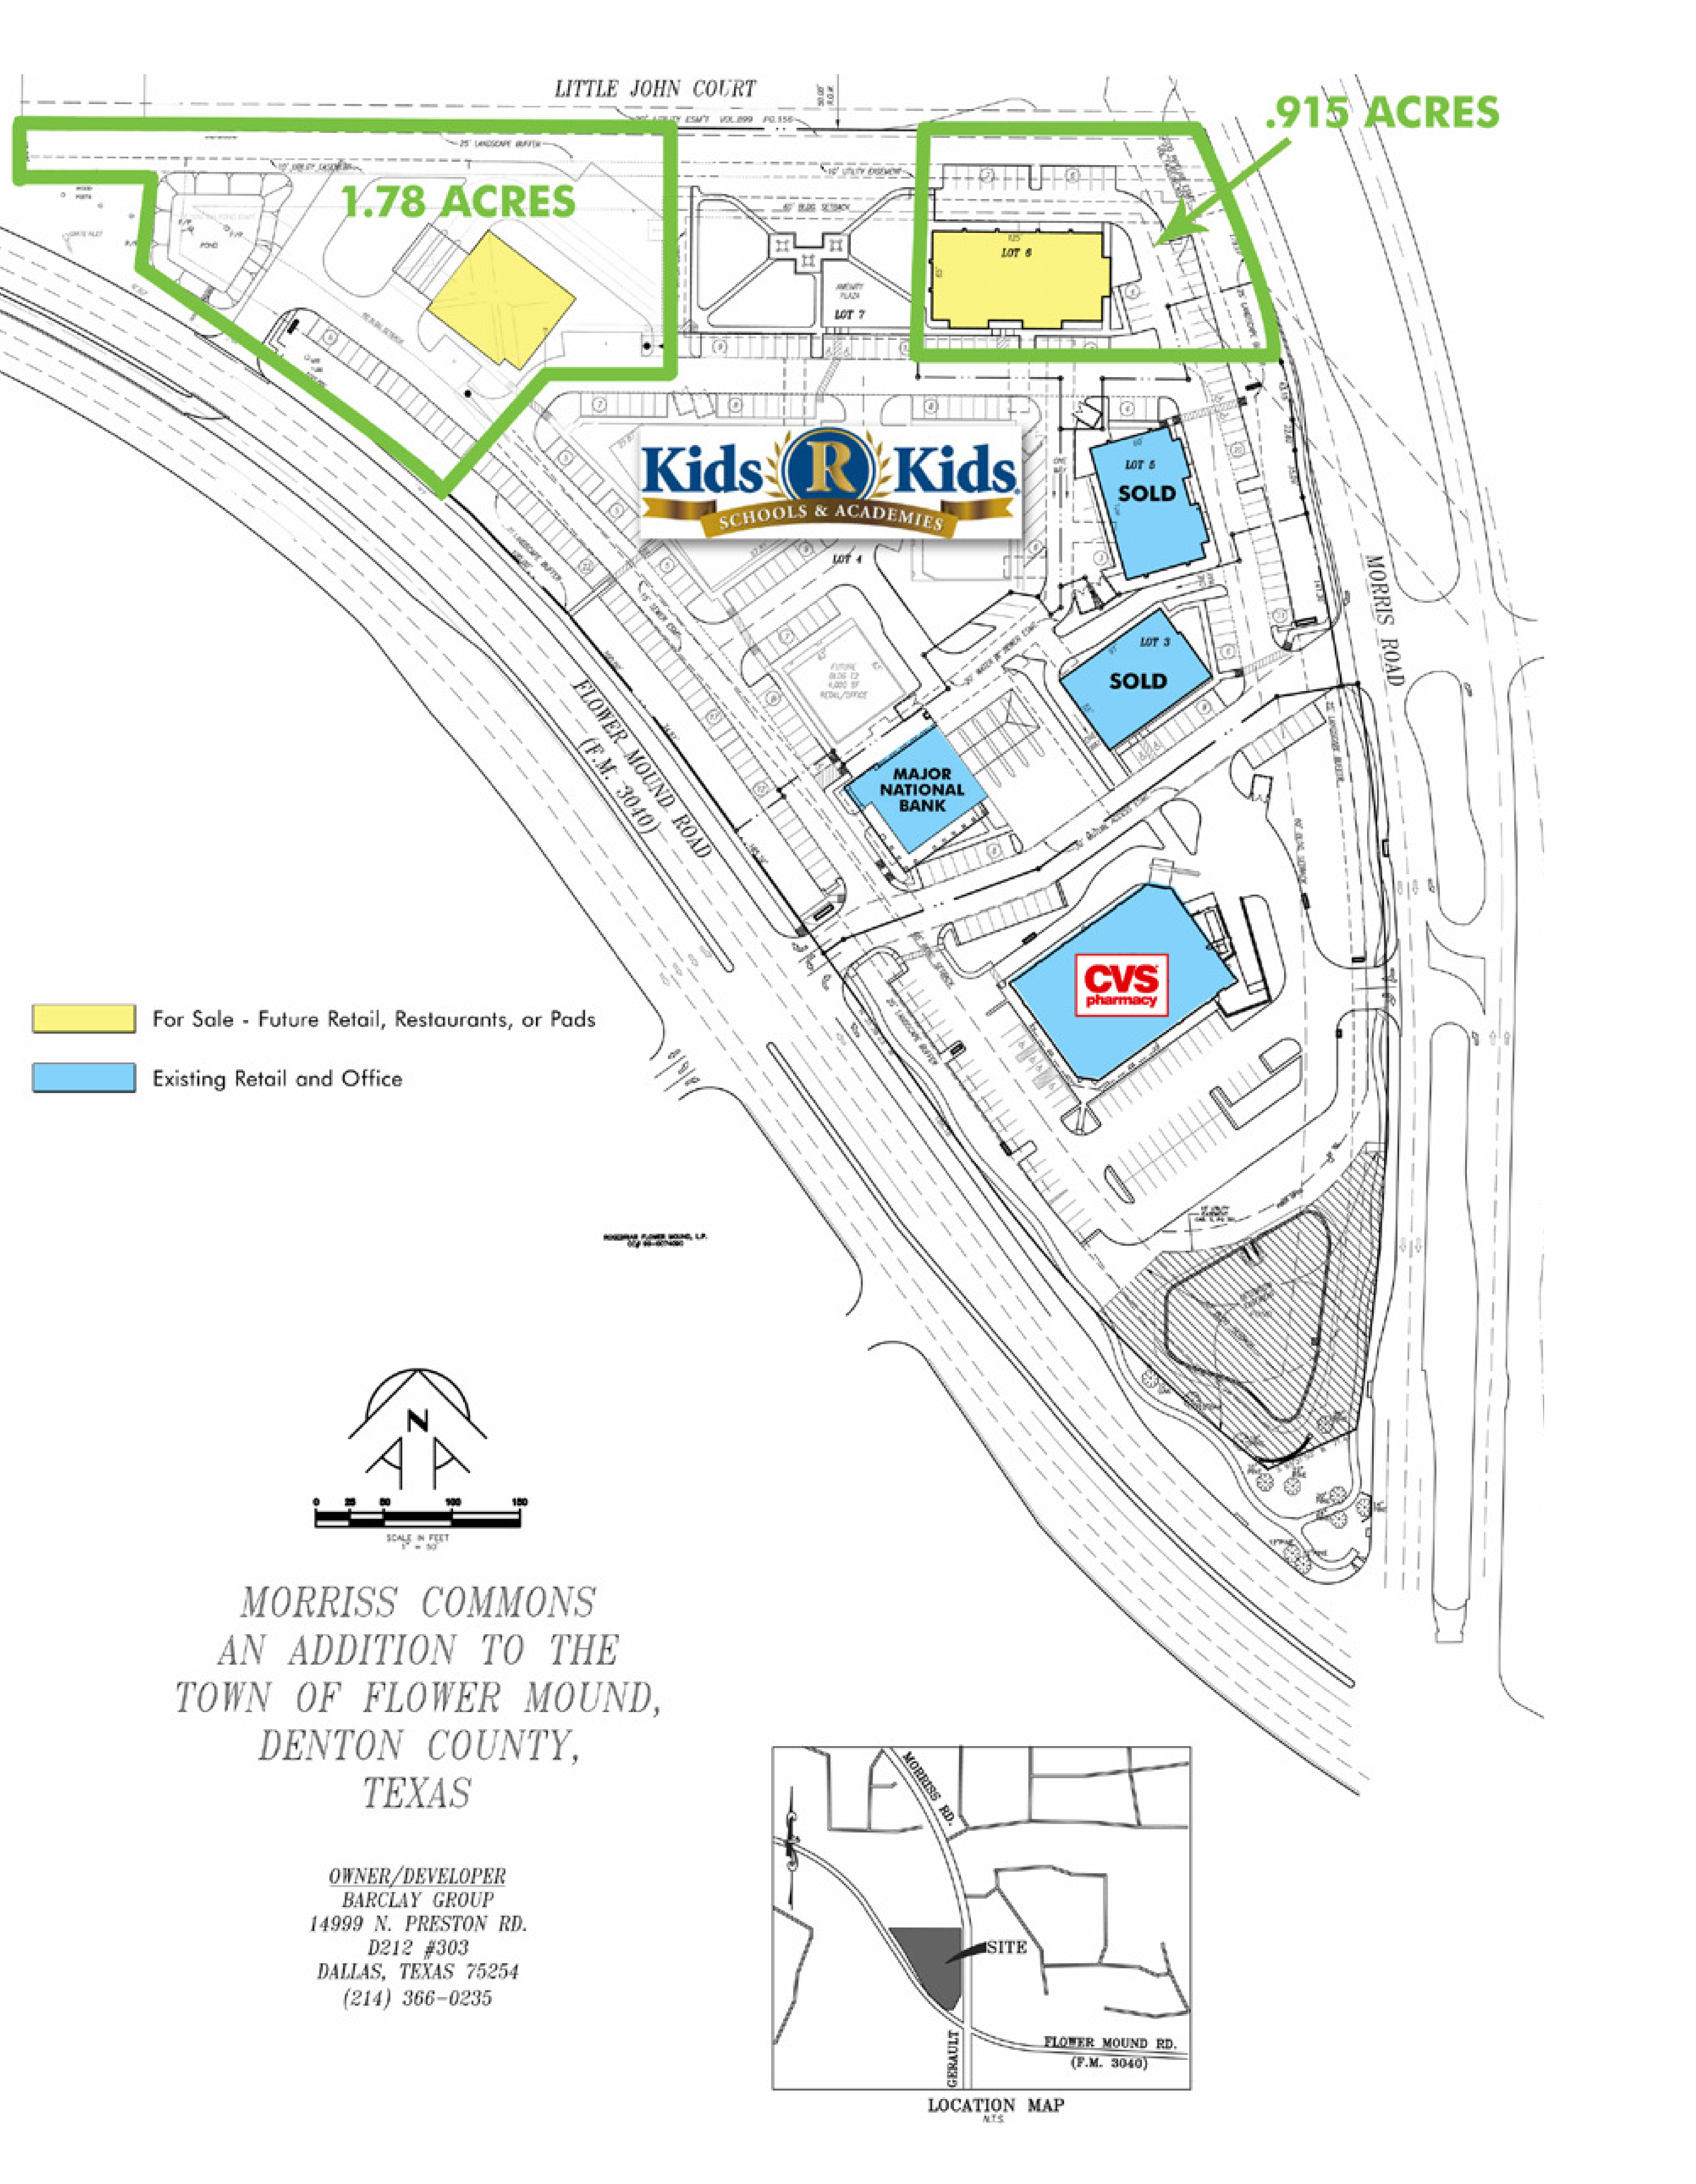 Morriss Commons: site plan